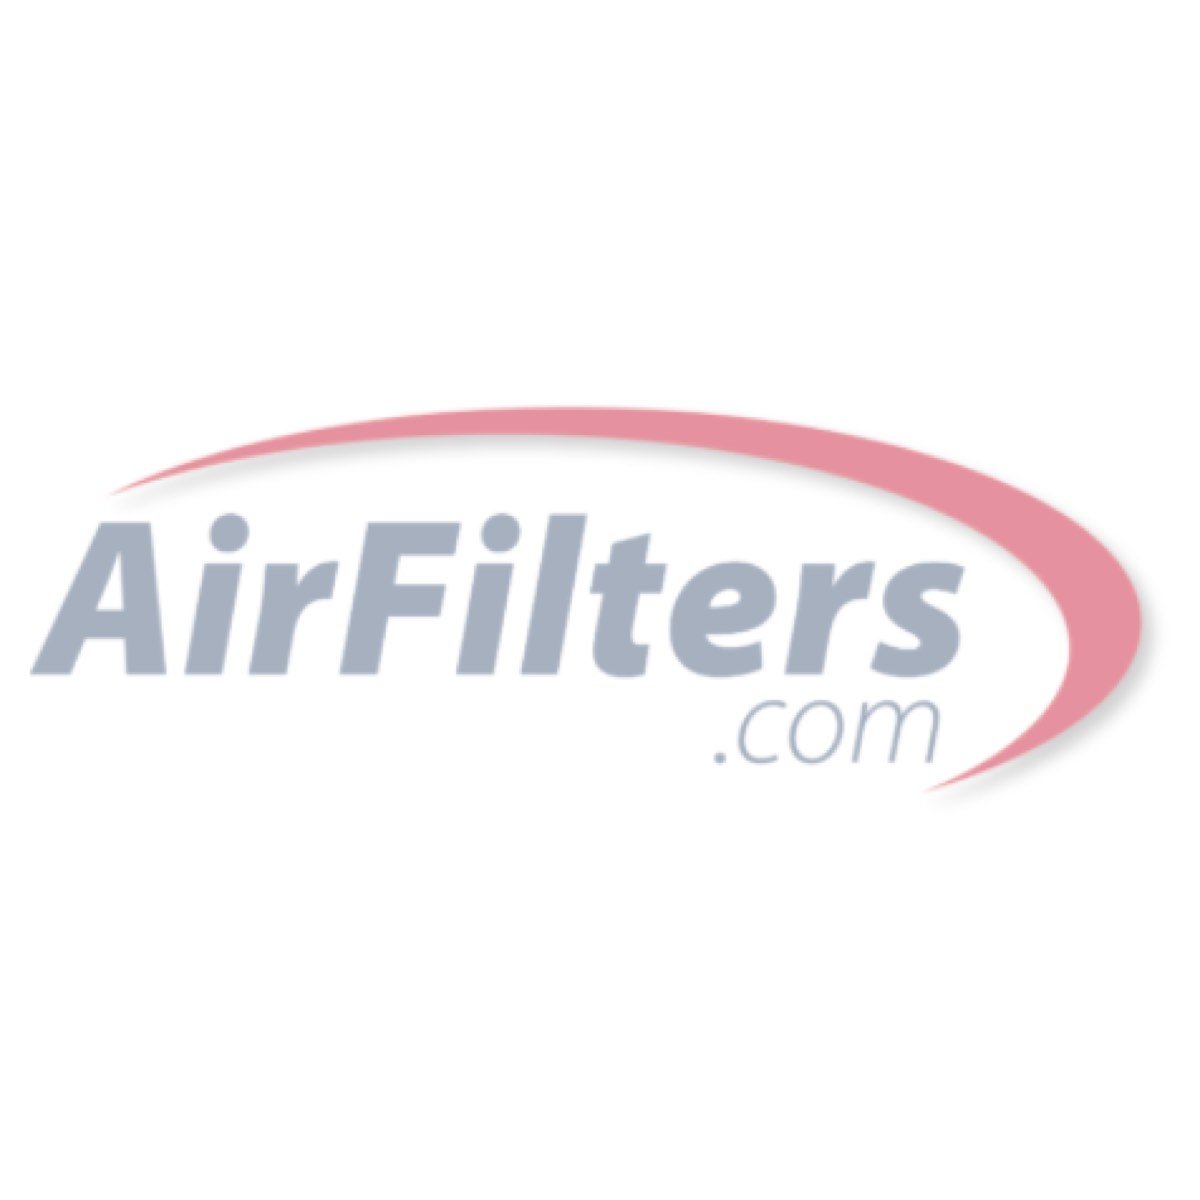 Carrier® FILCCFNC0021 Filters (19x20x4.25) by Accumulair®